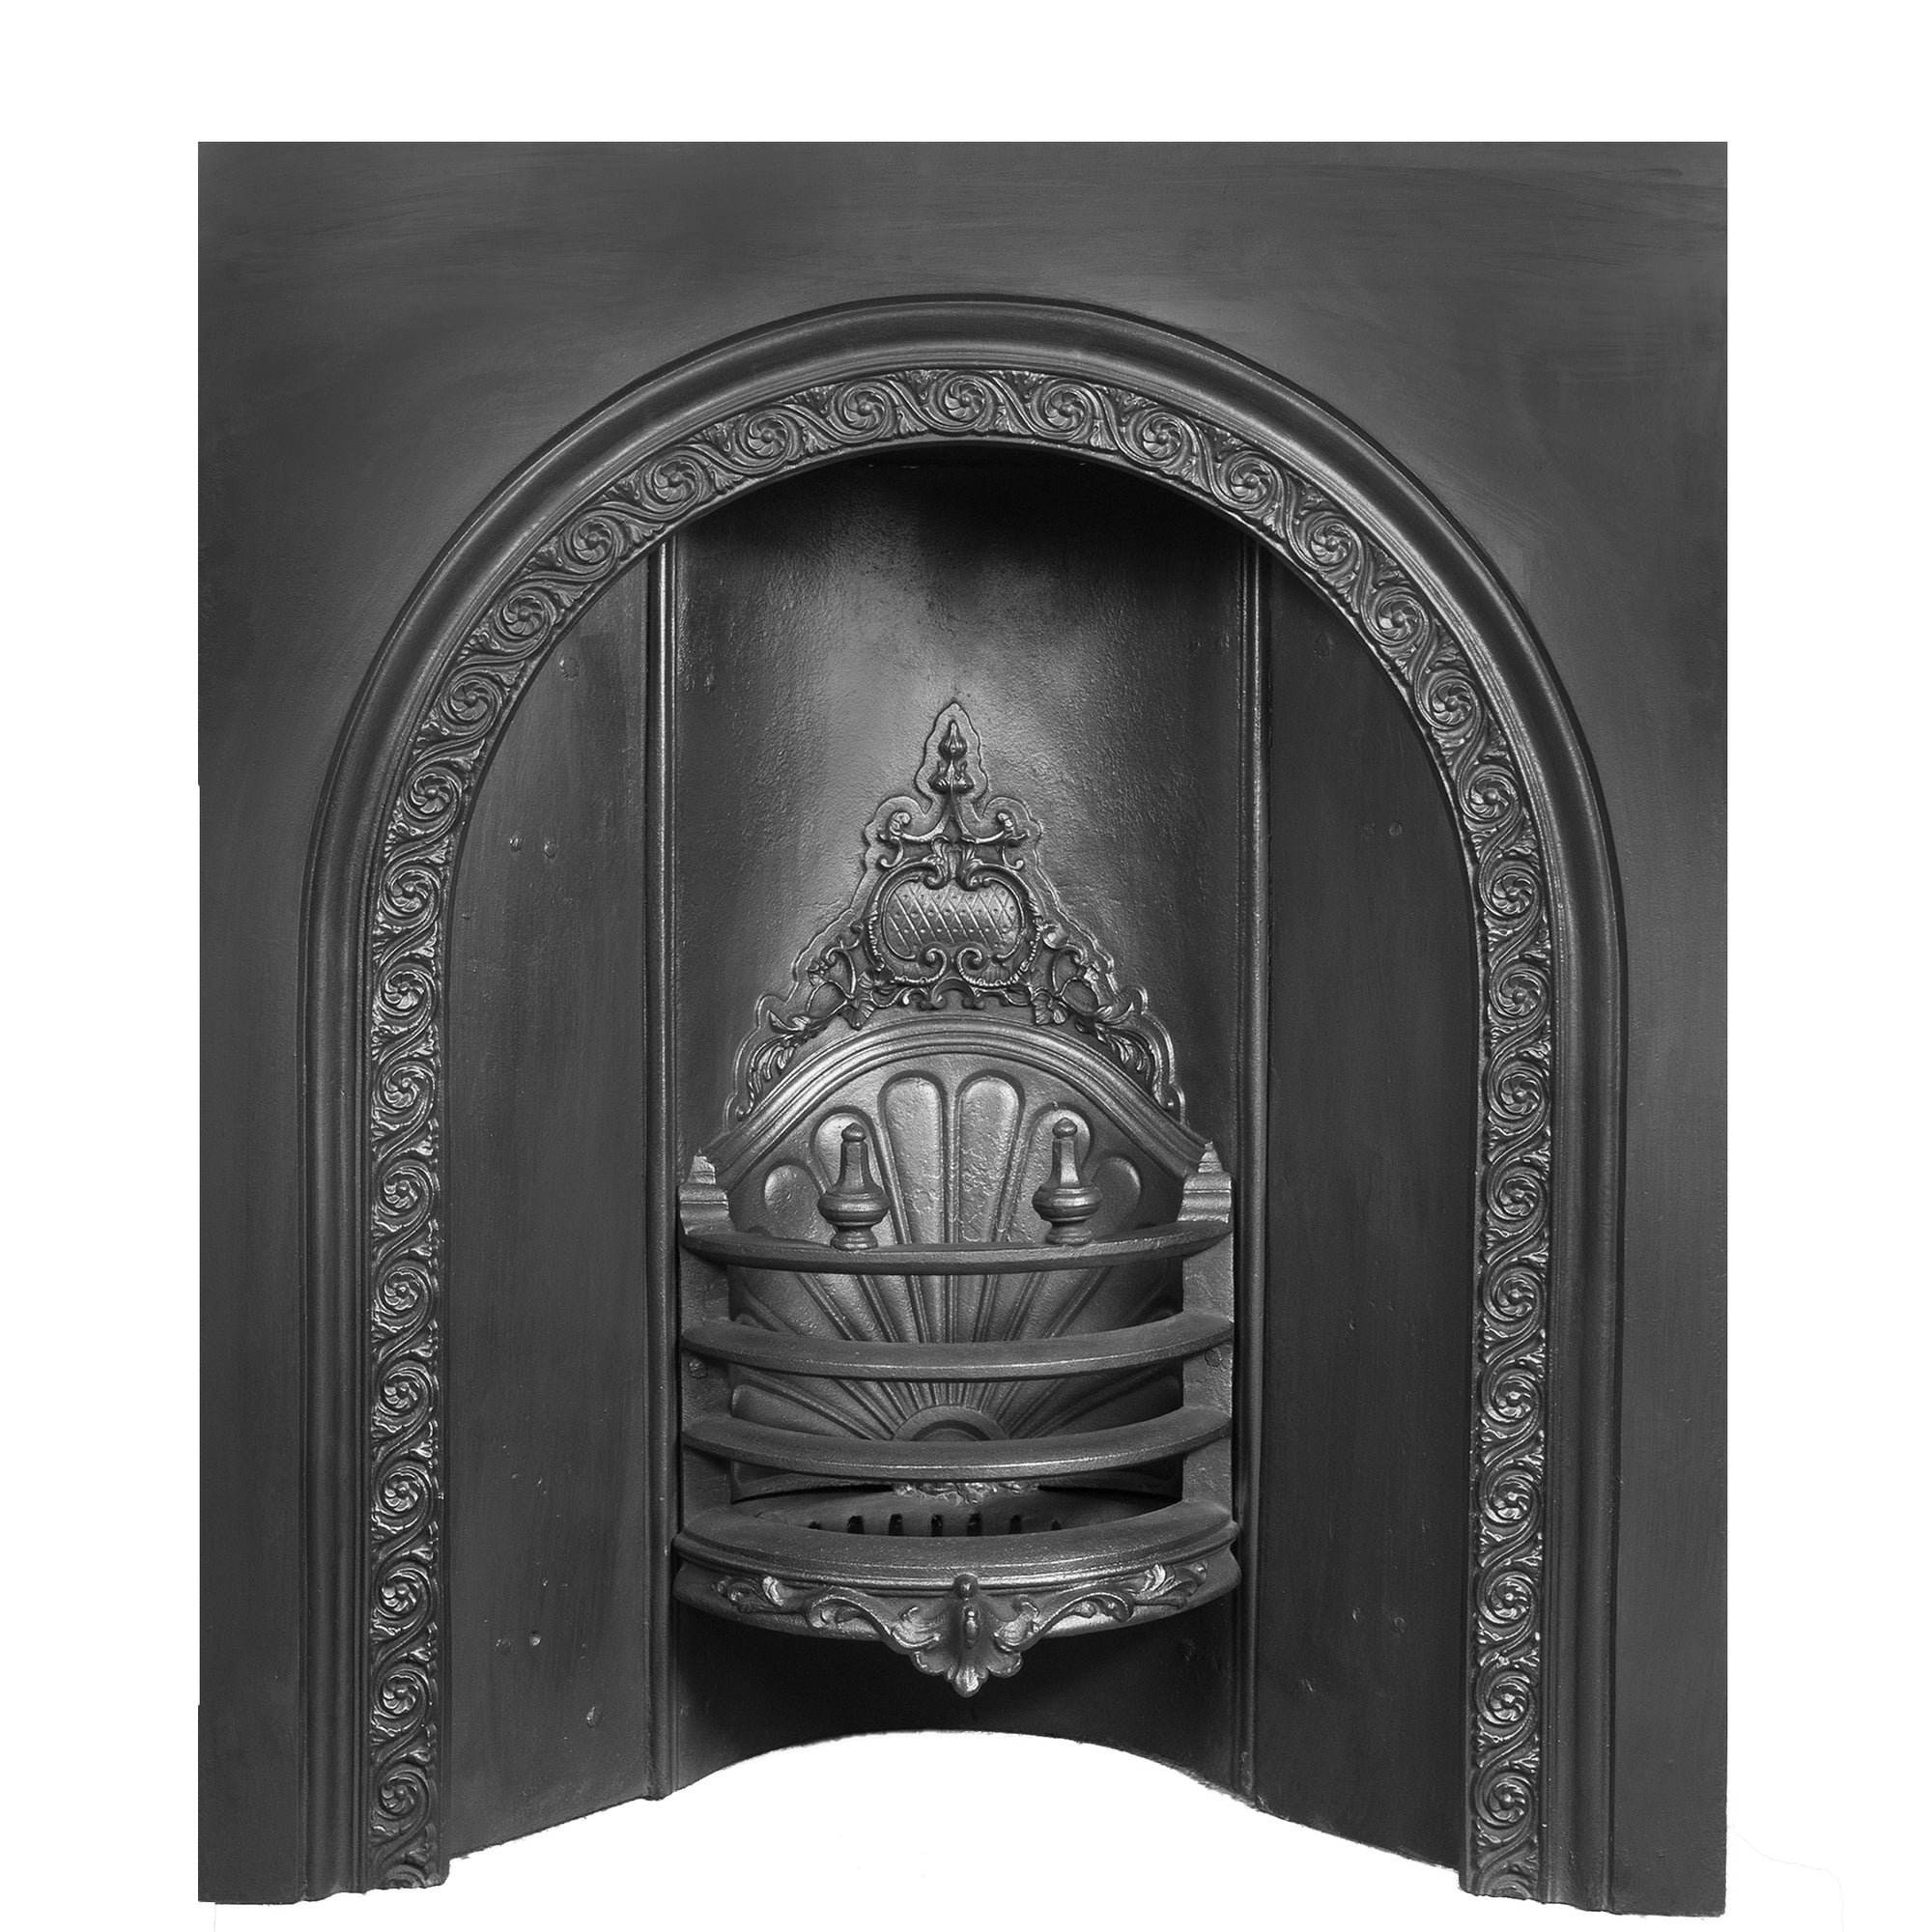 Antique Early Victorian Cast Iron Insert | The Architectural Forum